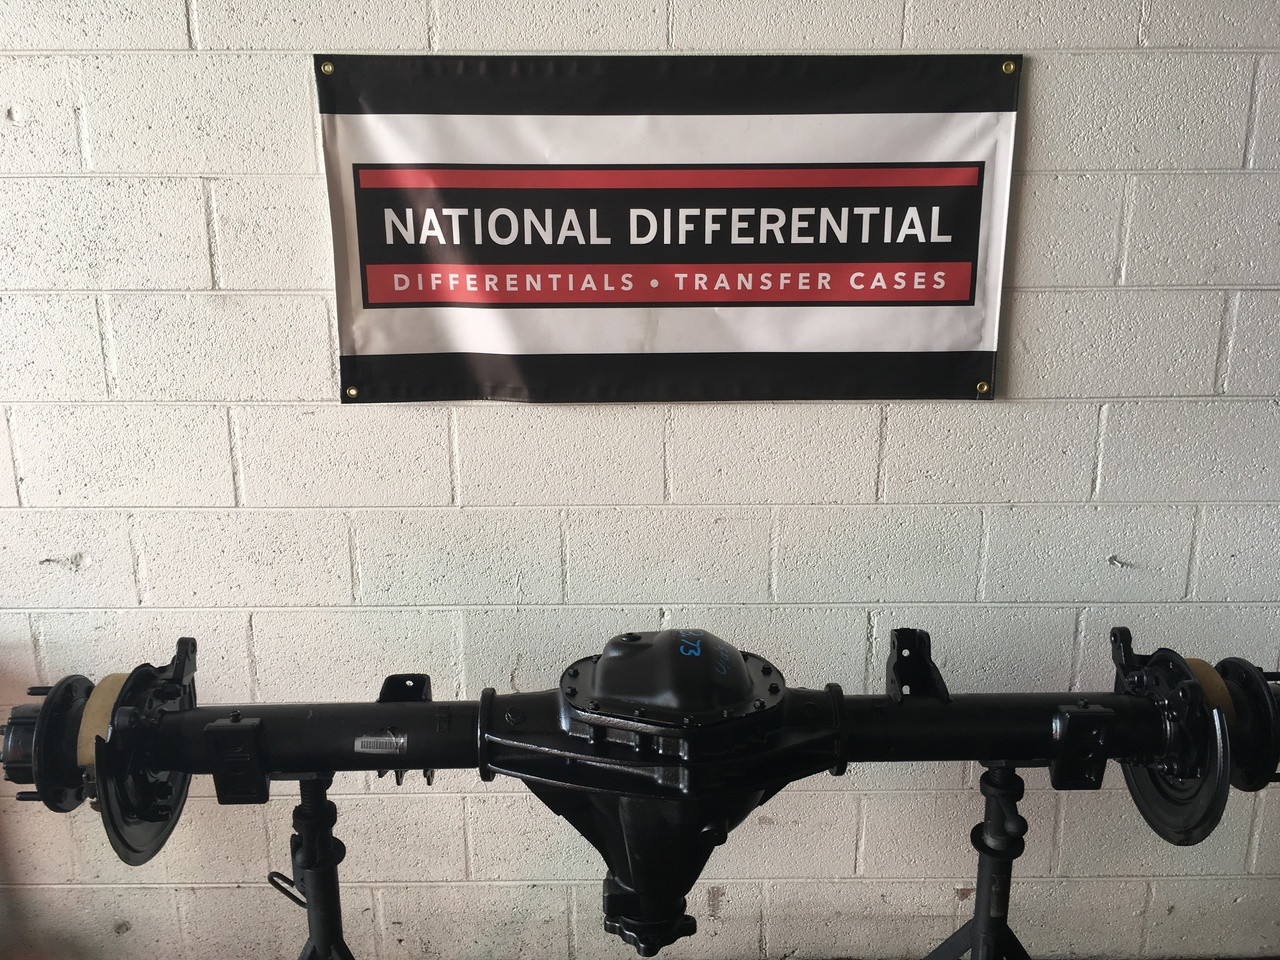 Rear 11.5-inch differential with limited slip for 2012 and 2013 Ram 2500 Pickup Trucks from National Differential in Colorado Springs.